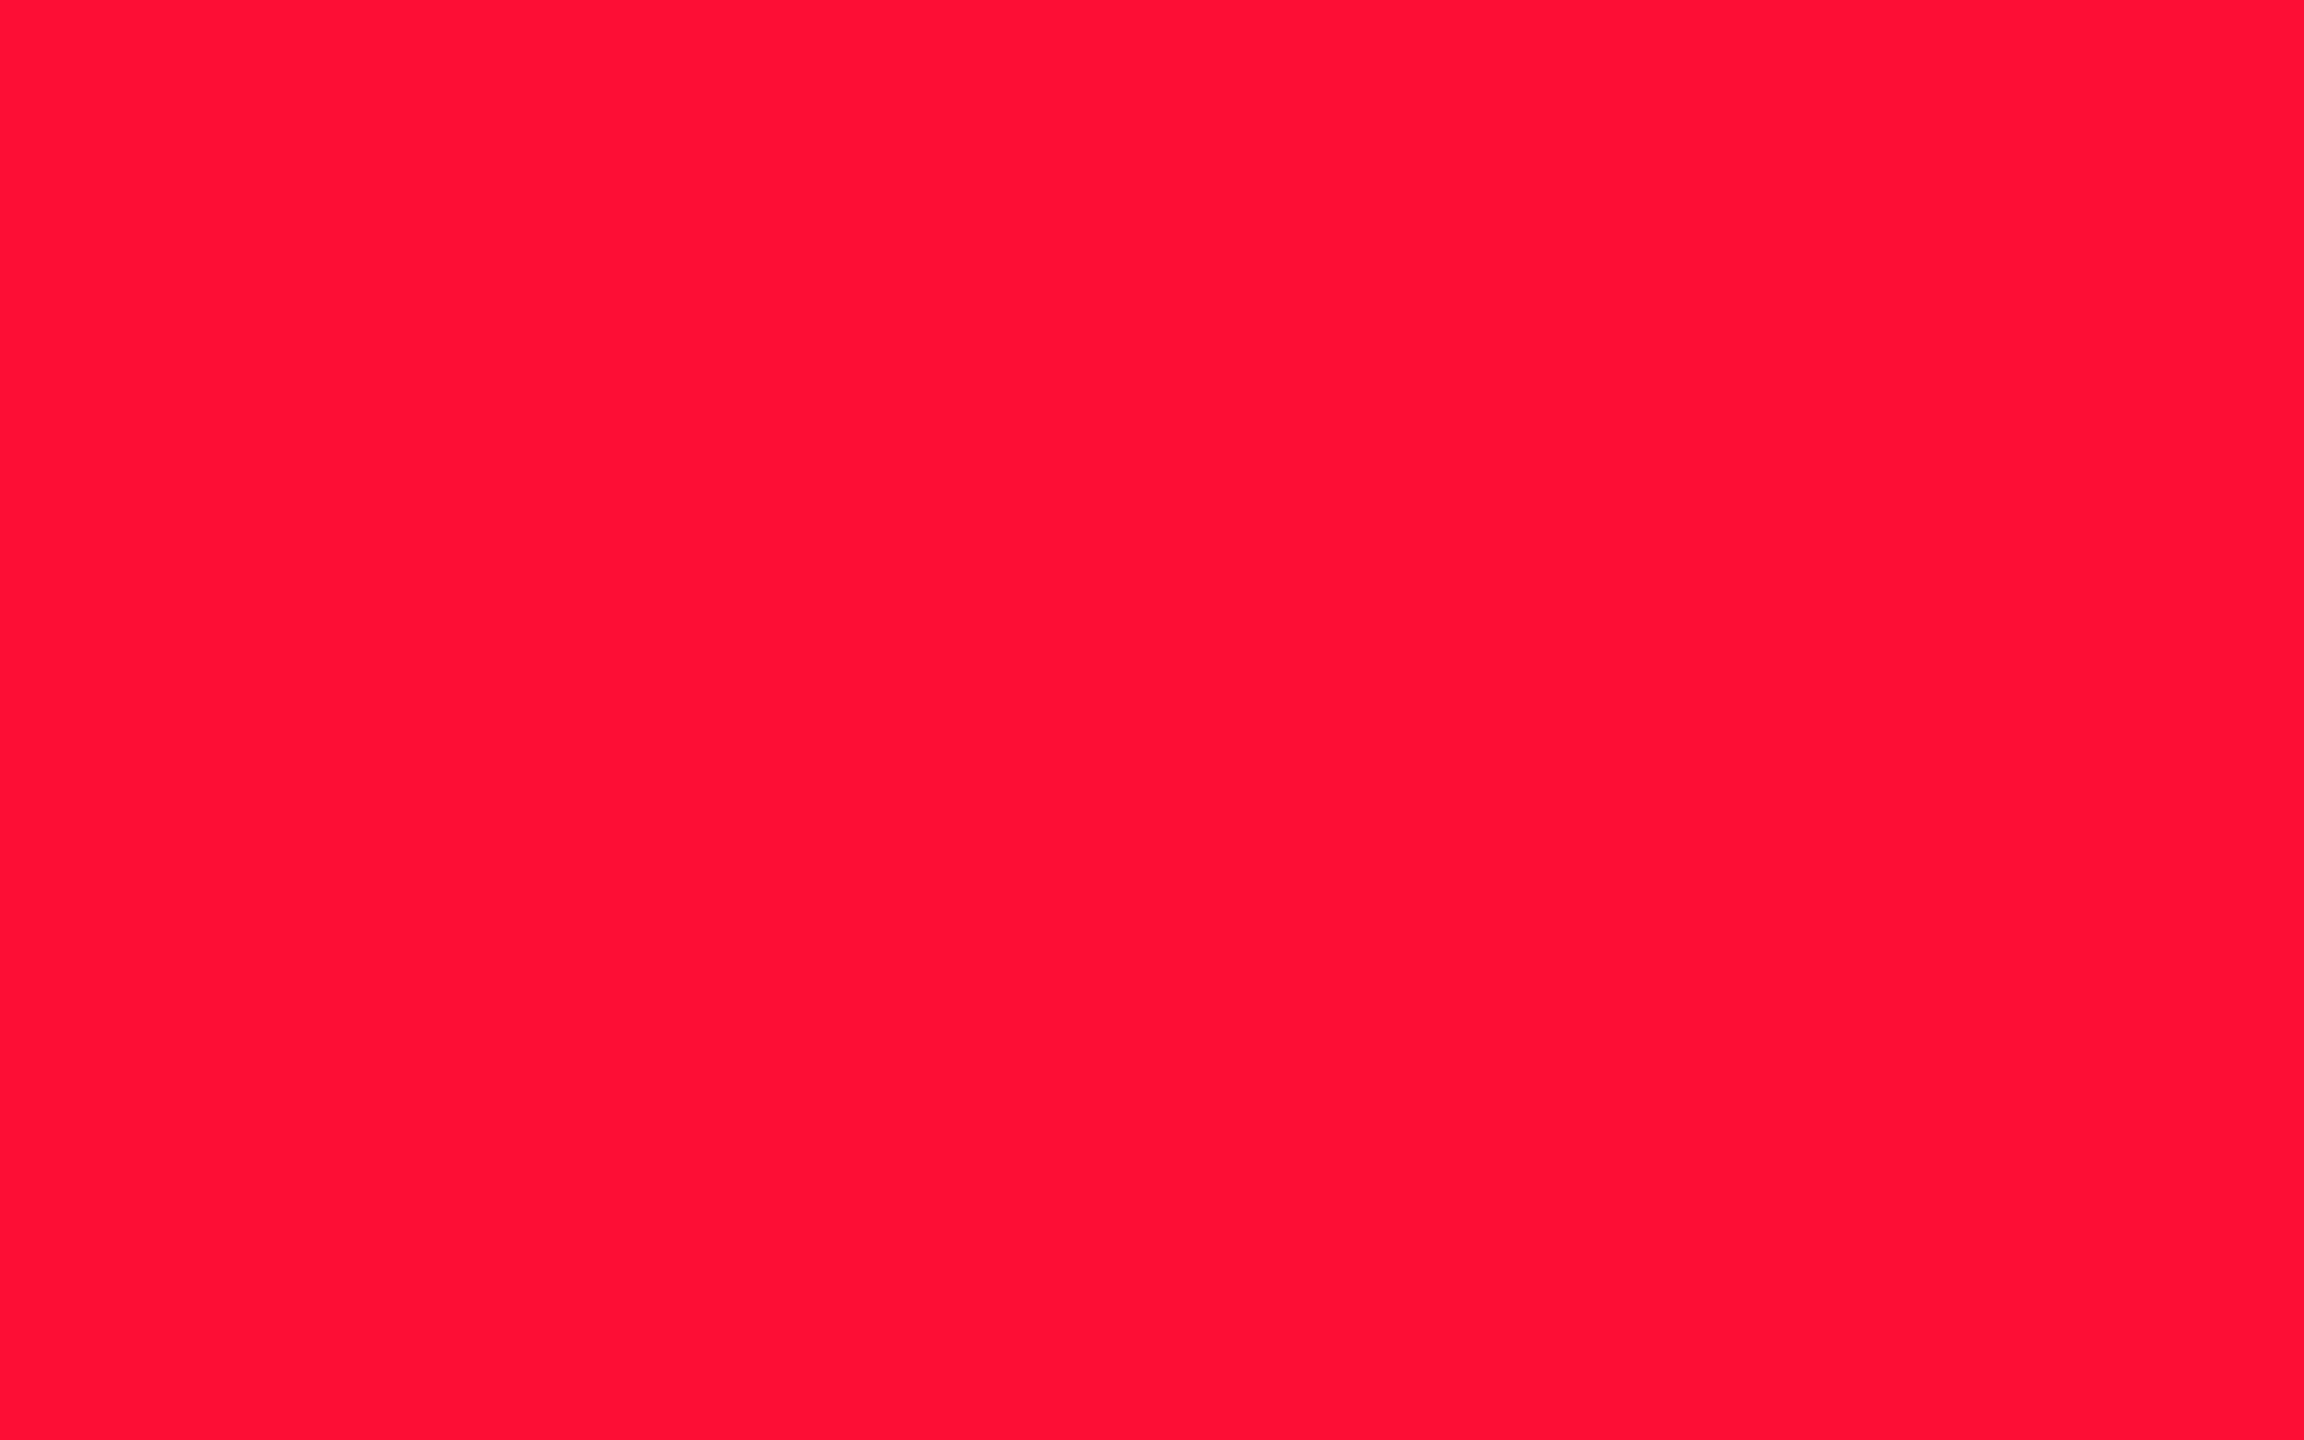 2304x1440 Tractor Red Solid Color Background